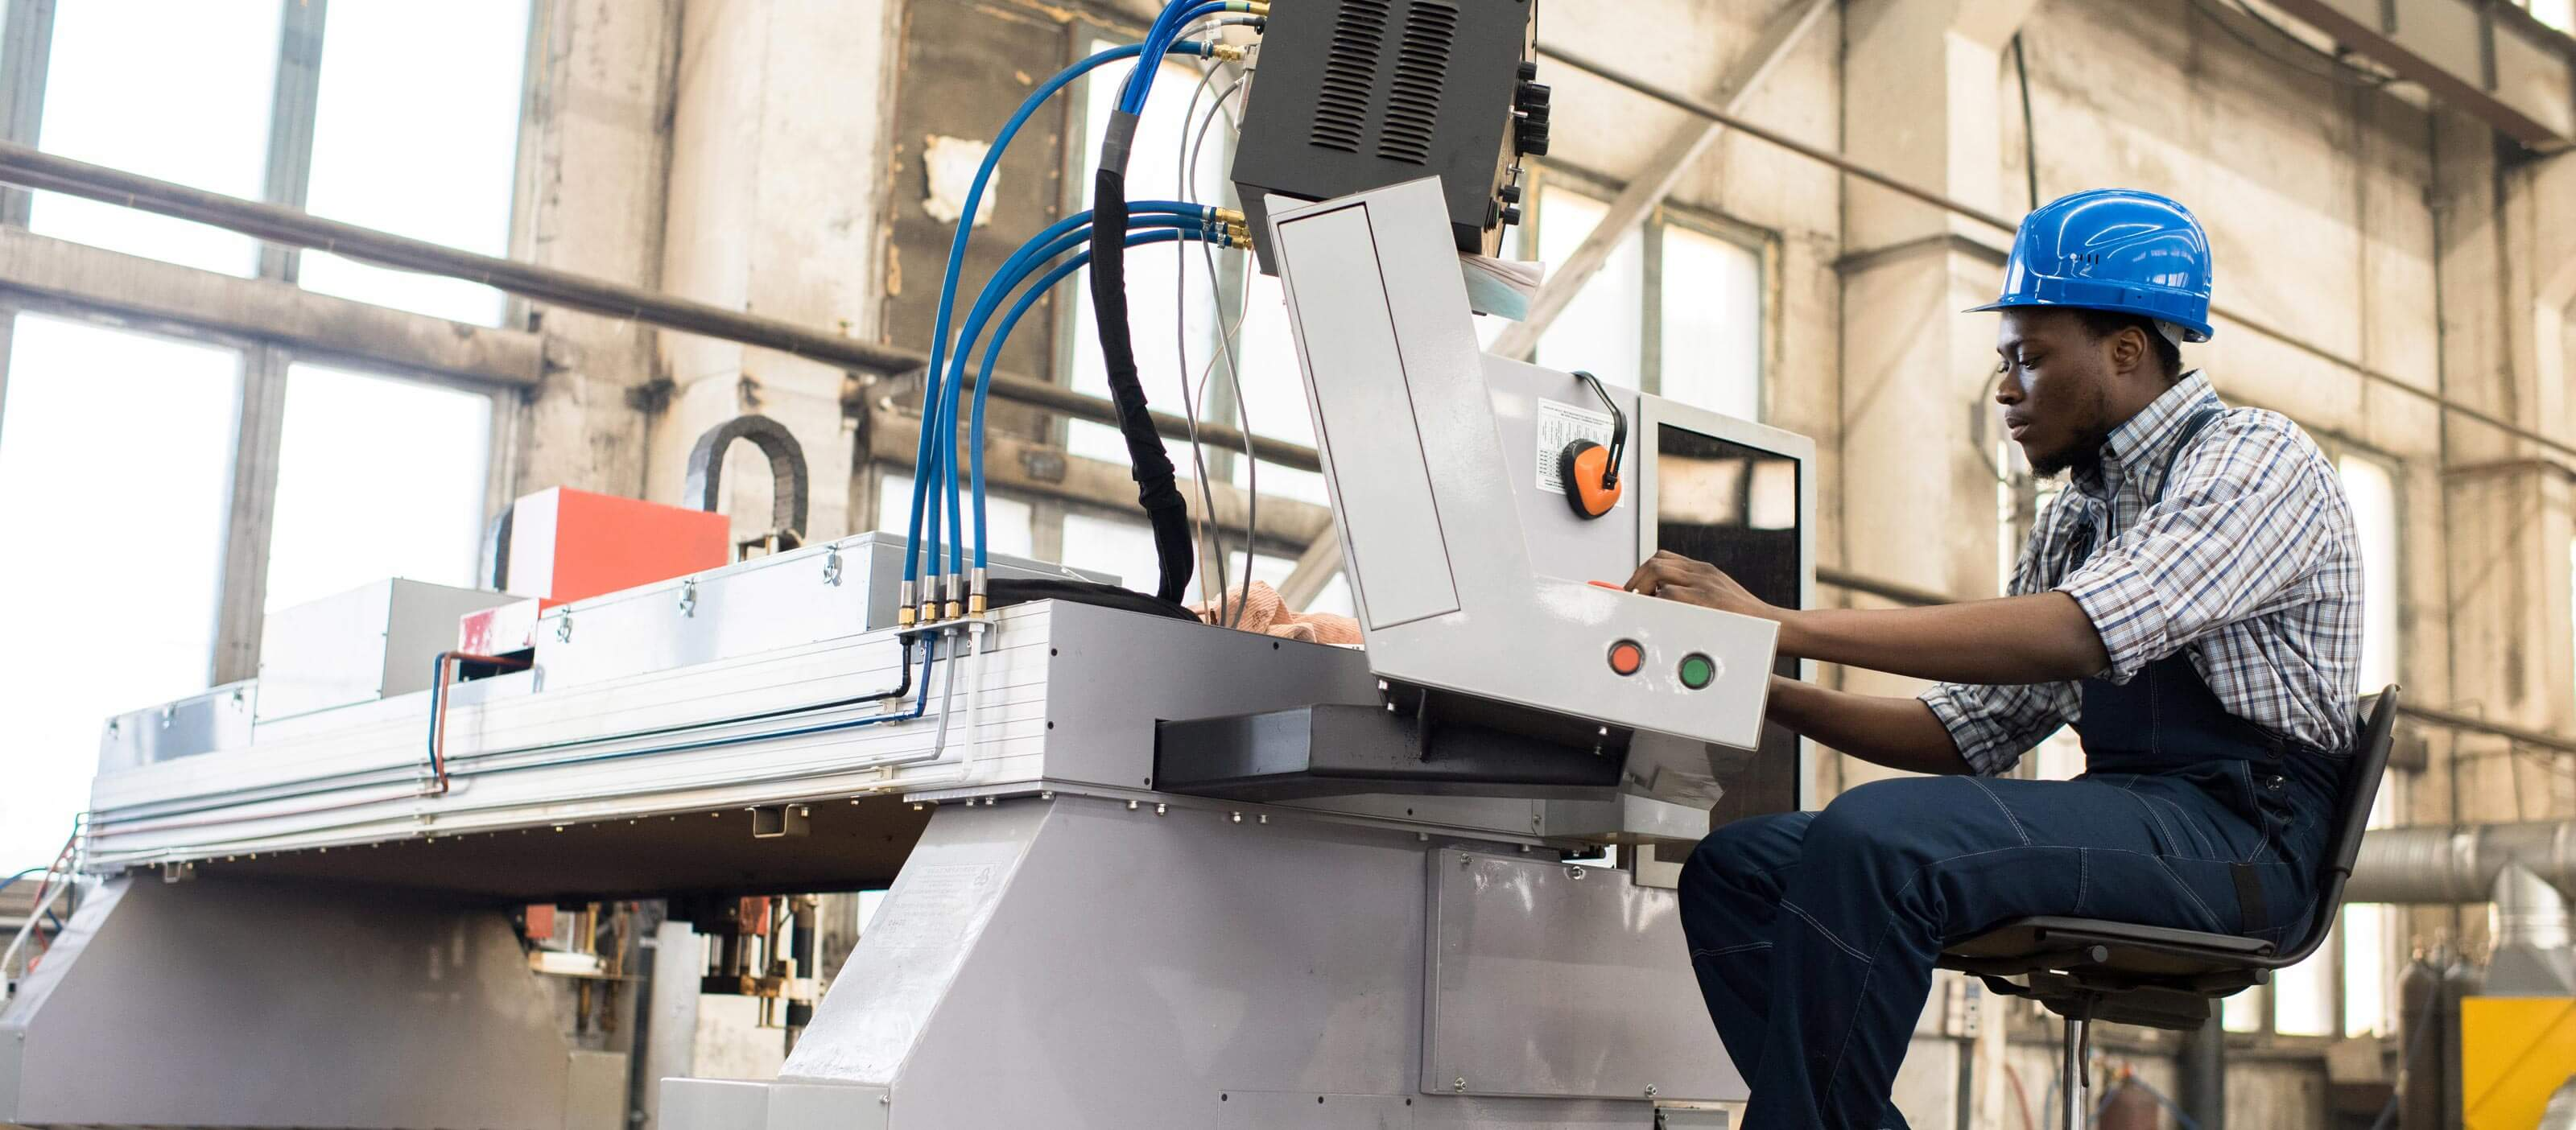 Engineer using HMI/SCADA software in manufacturing environment